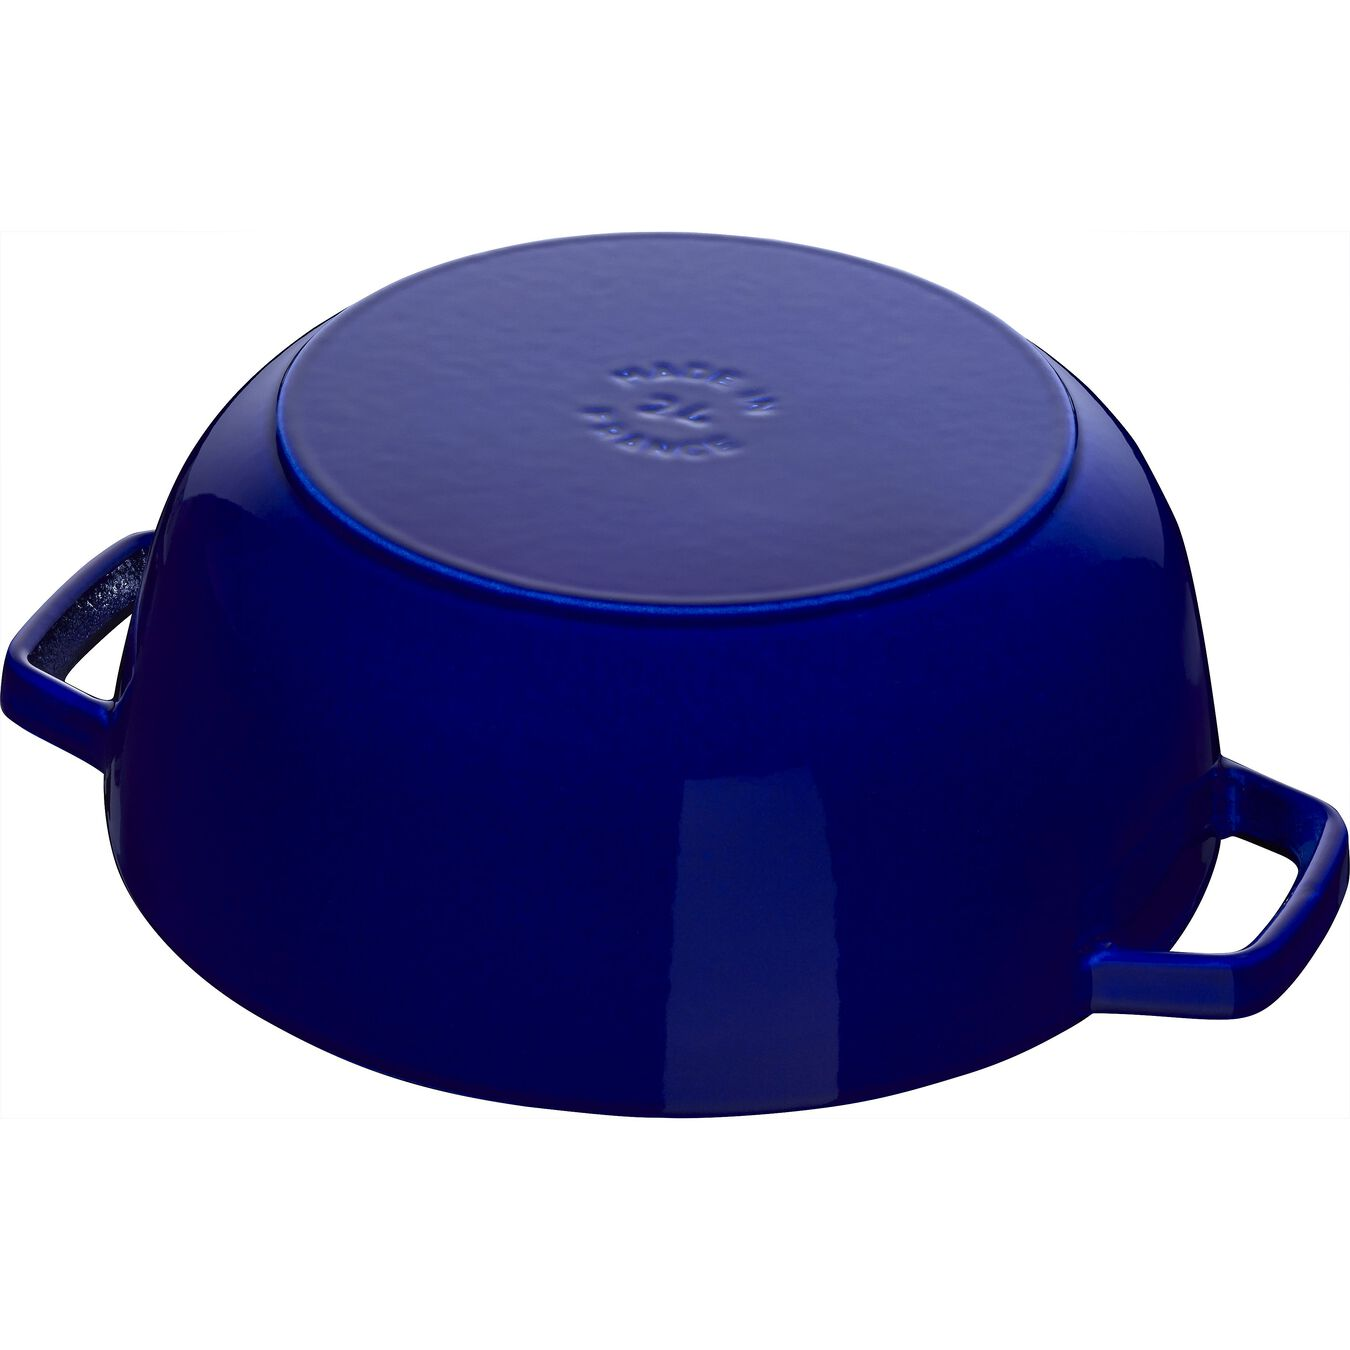 3.75-qt Essential French Oven with Lilly Lid - Dark Blue,,large 4